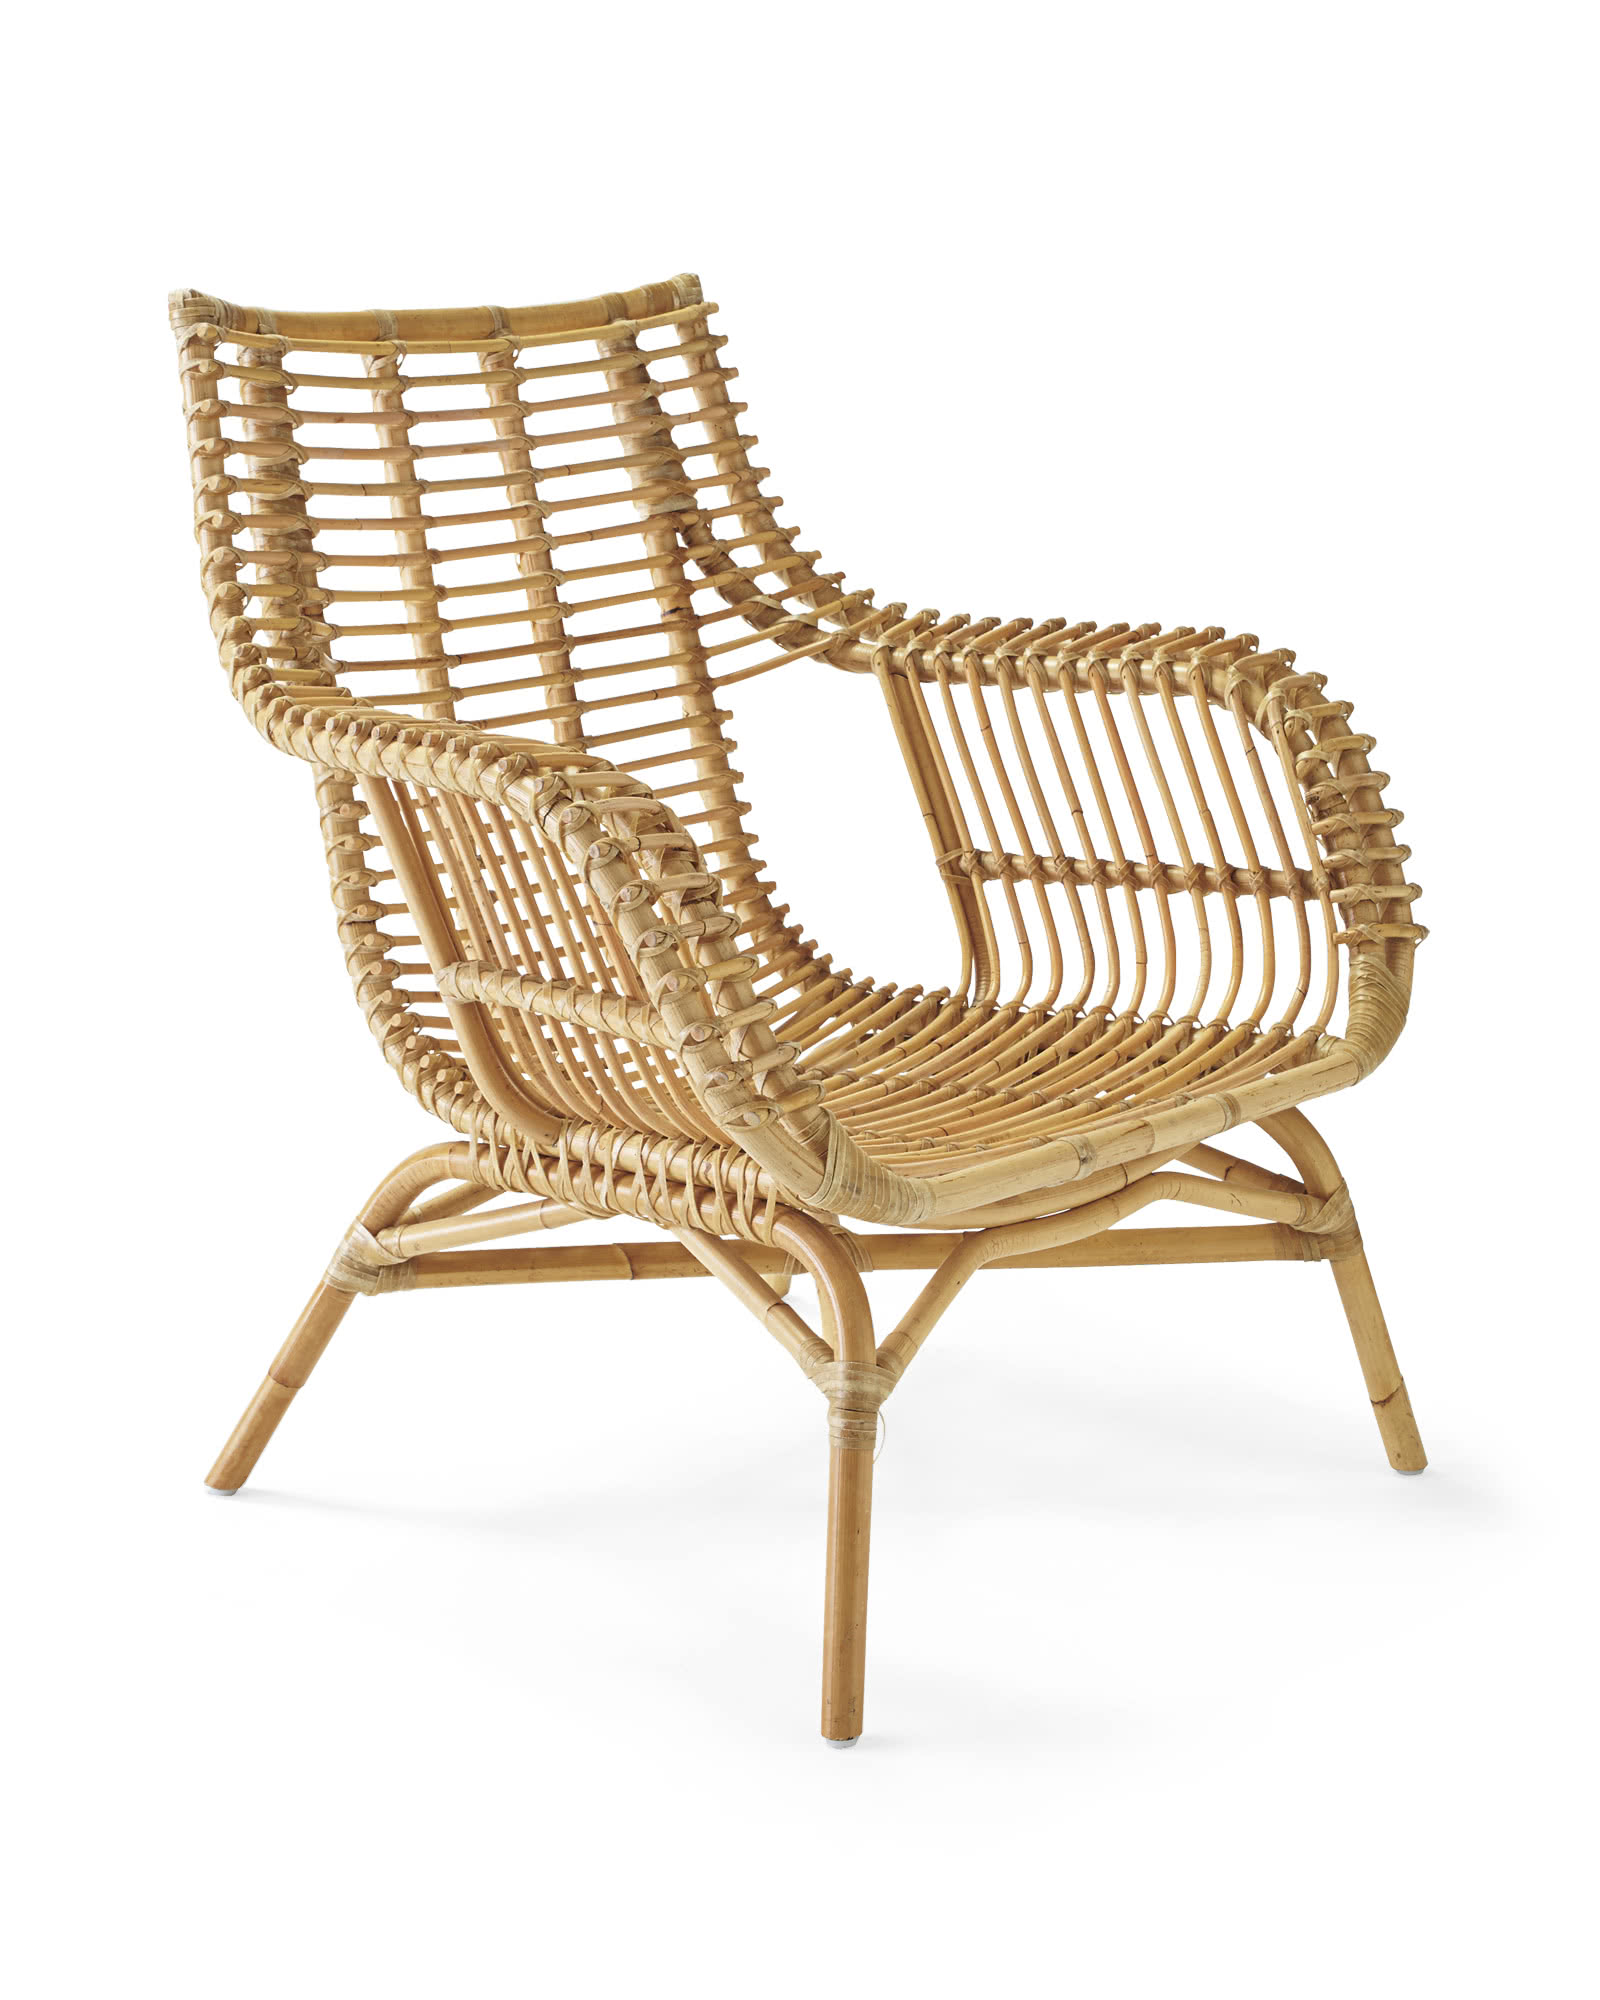 Furn_Chair_Venice_Rattan_Natural_Angle_MV_Crop_SH-2.jpg